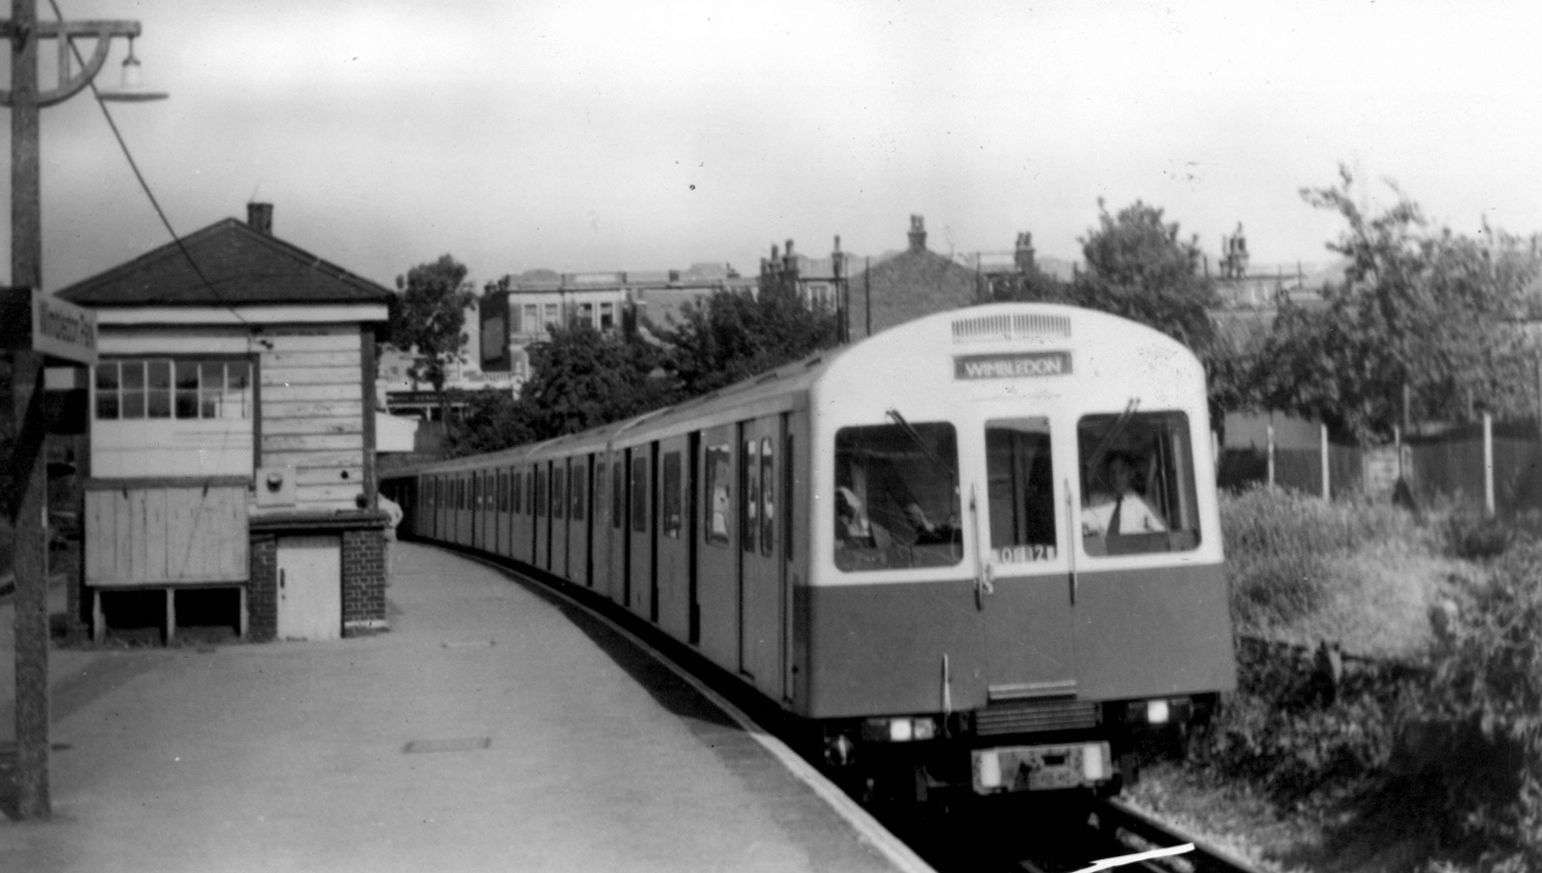 District line, Wimbledon Park